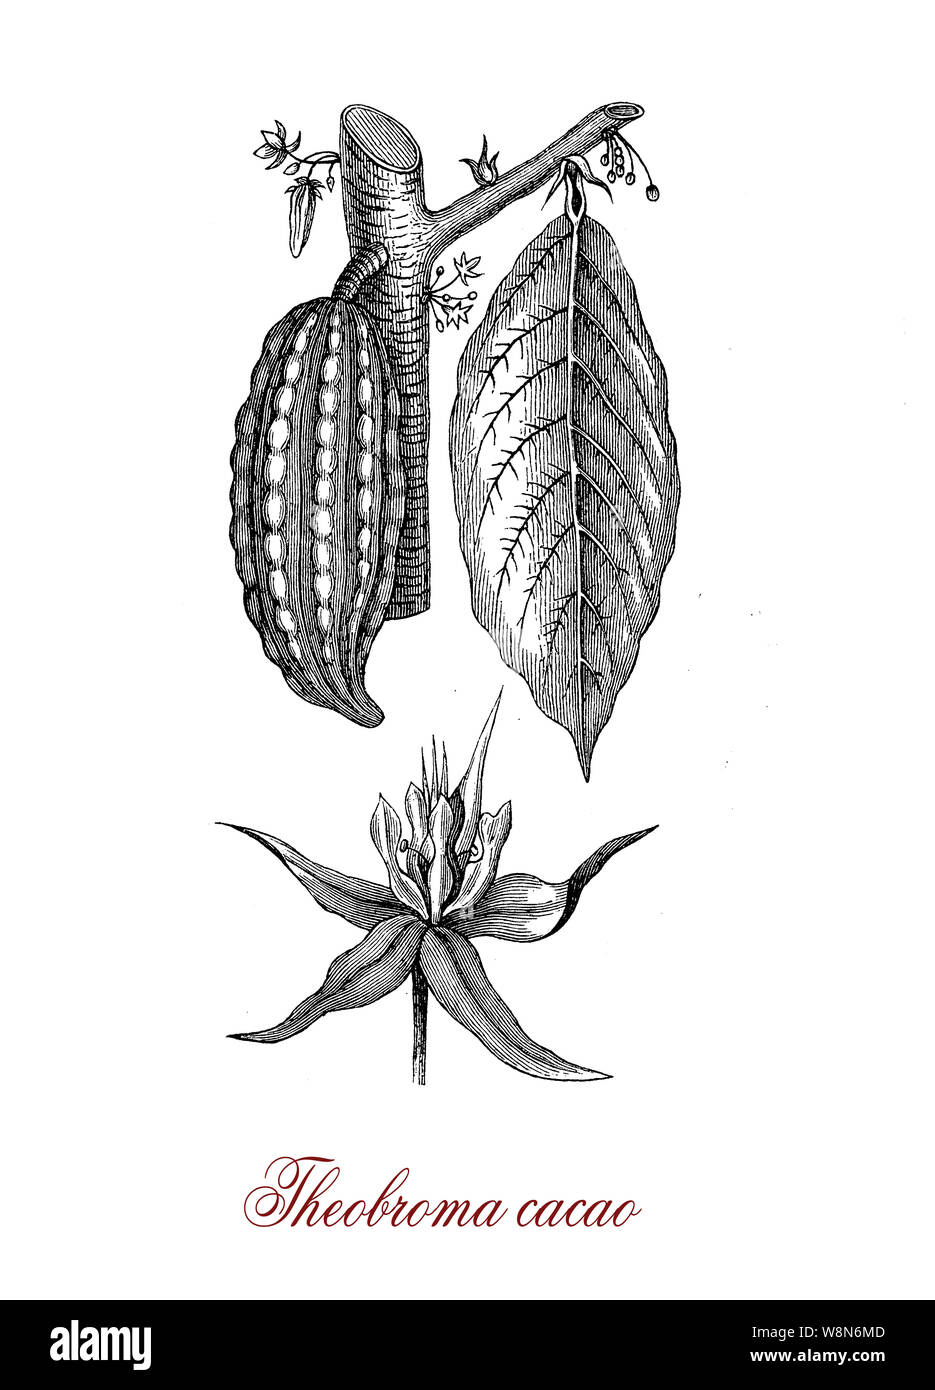 Cacao Tree Botanical Drawing High Resolution Stock Photography And Images Alamy